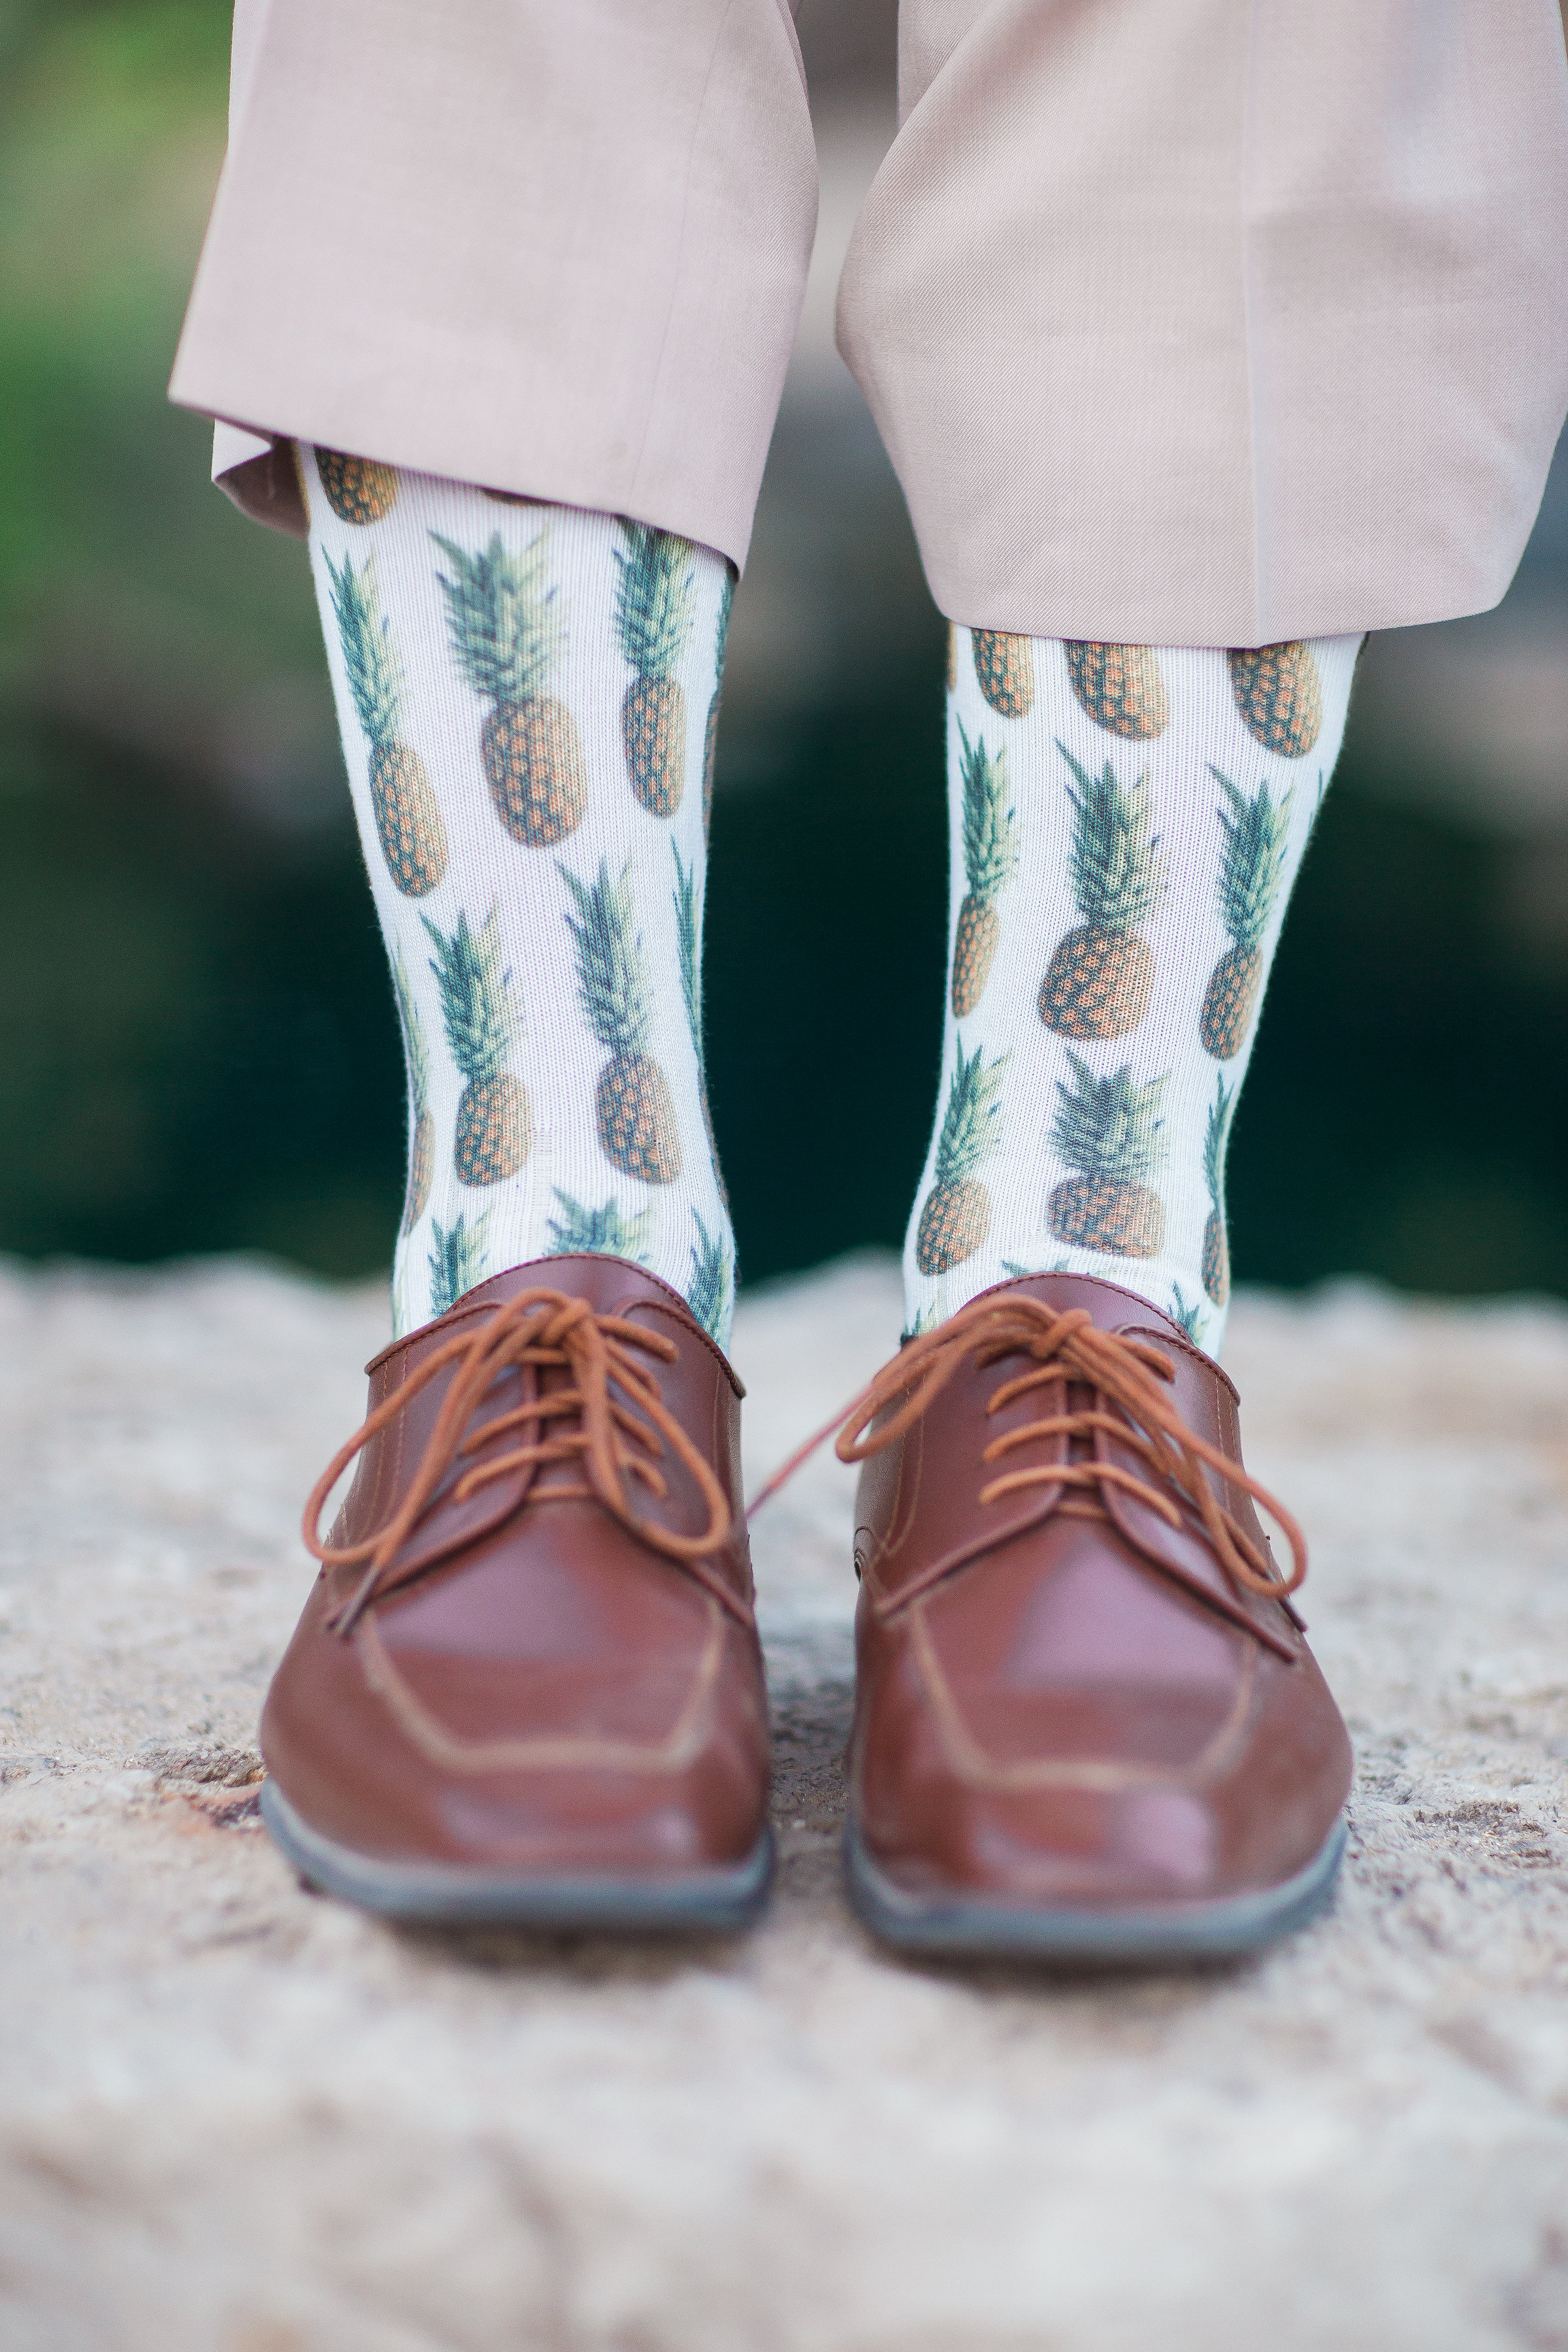 Groom's Pineapple Socks - Better Together Photography